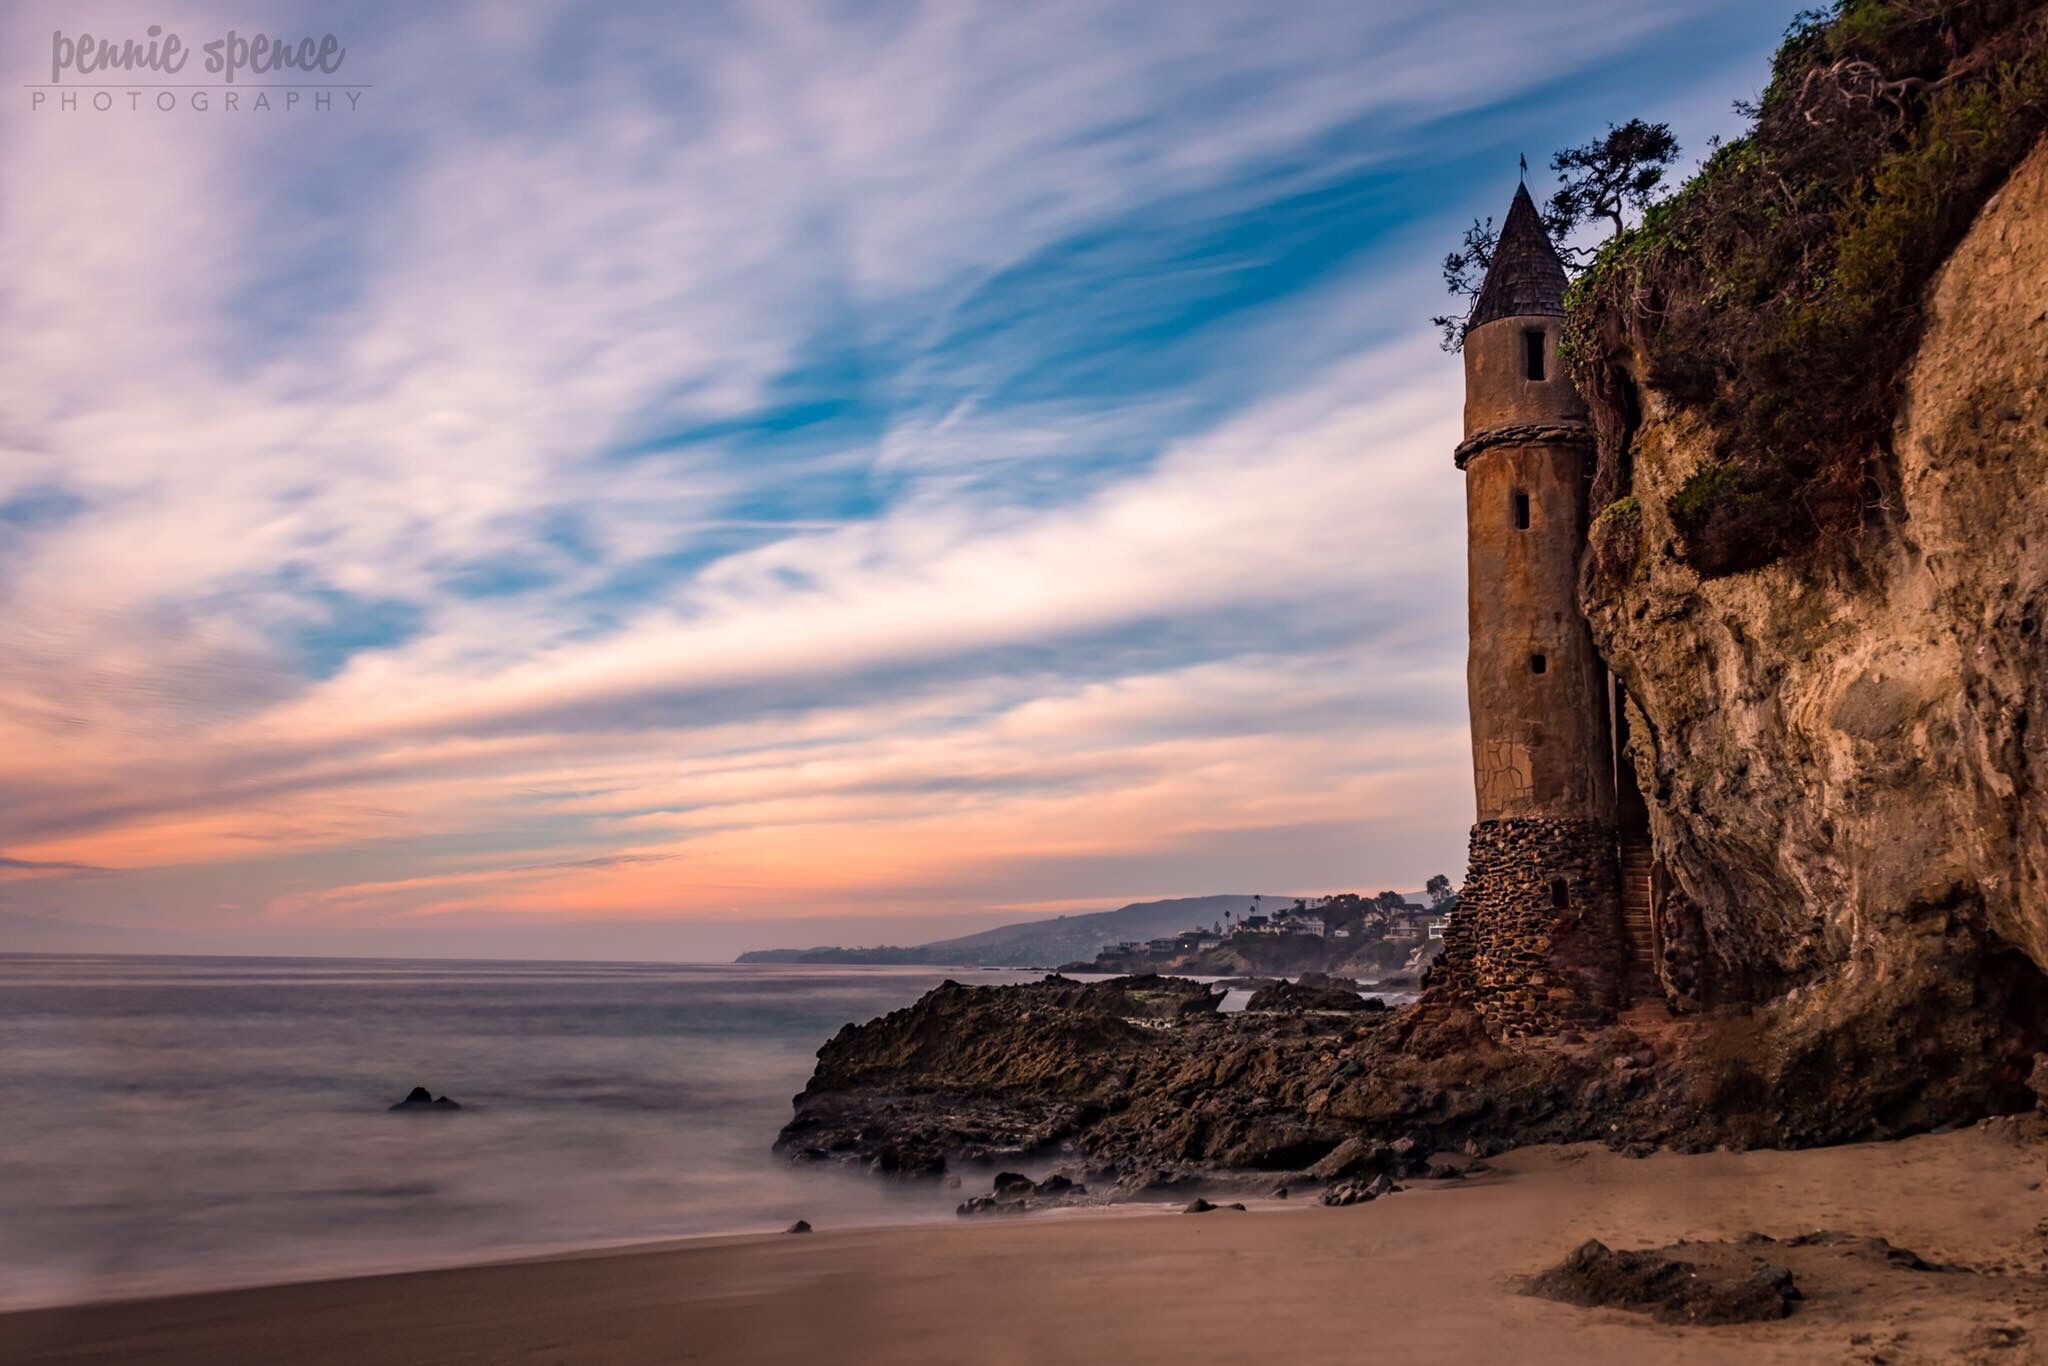 Castle Tower in the Rock face photograph by Pennie Spence